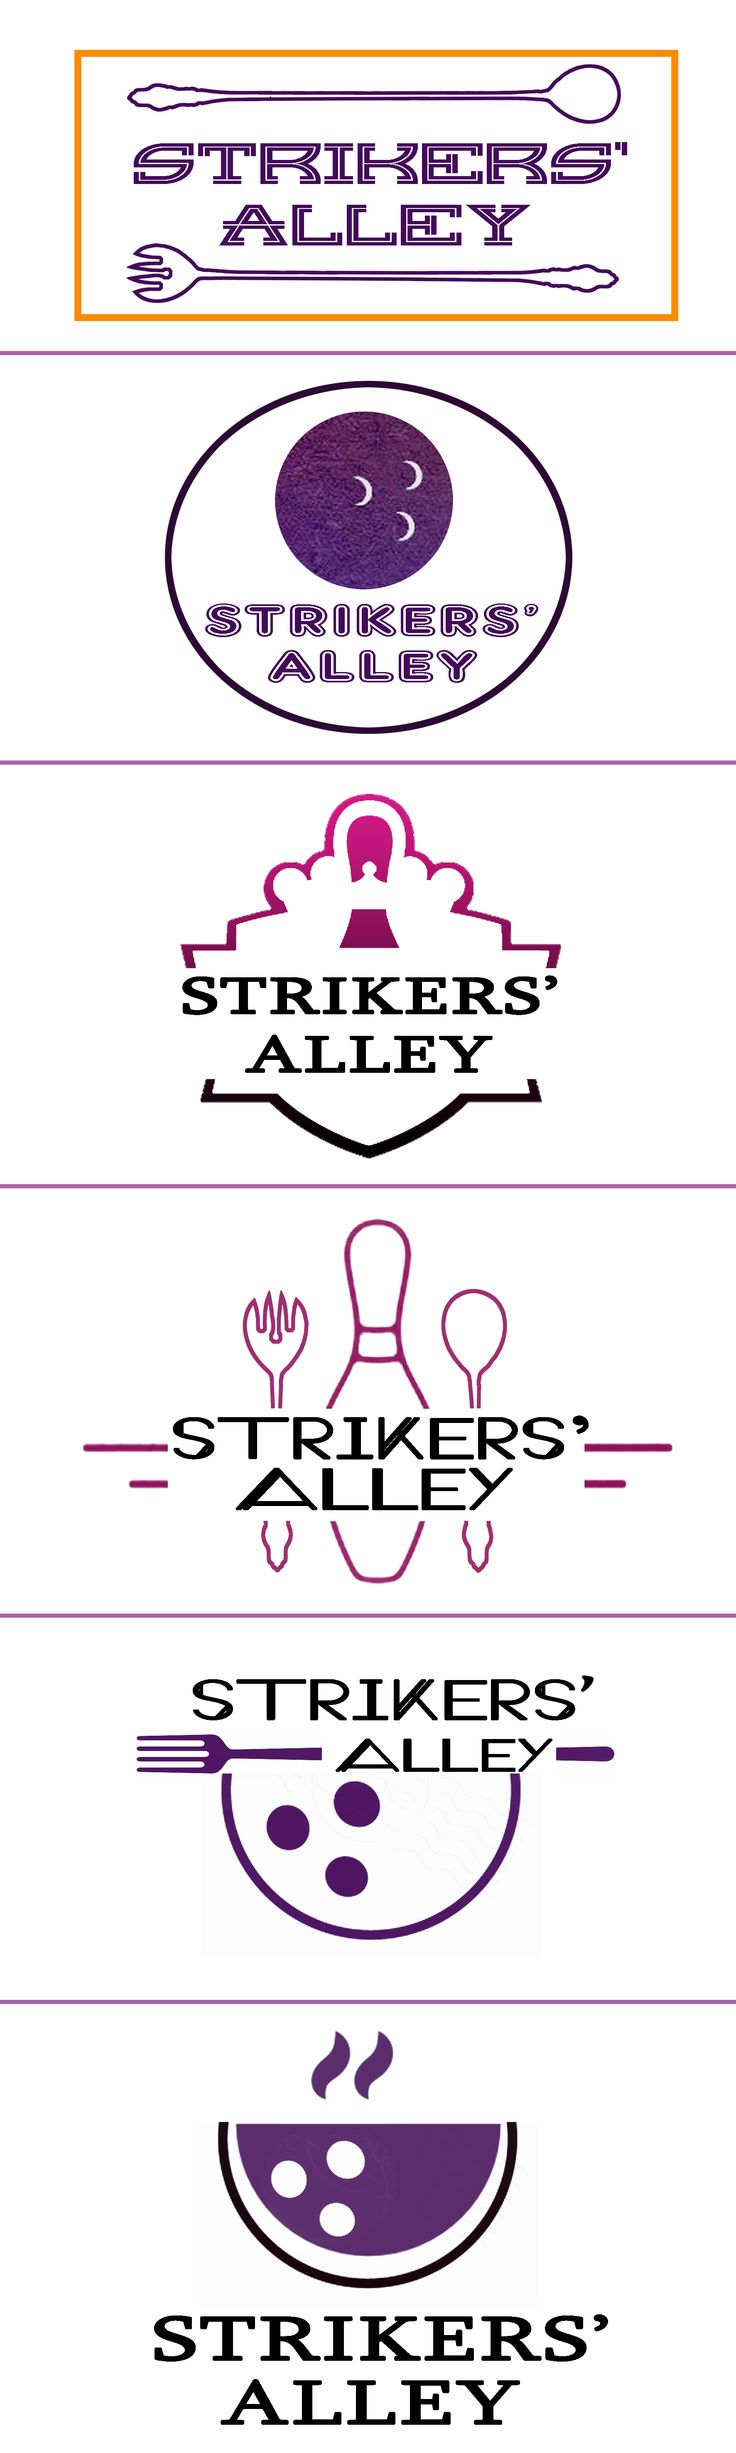 "Logo Design of ""Striker Alley"" A cafe featuring bowling concept"